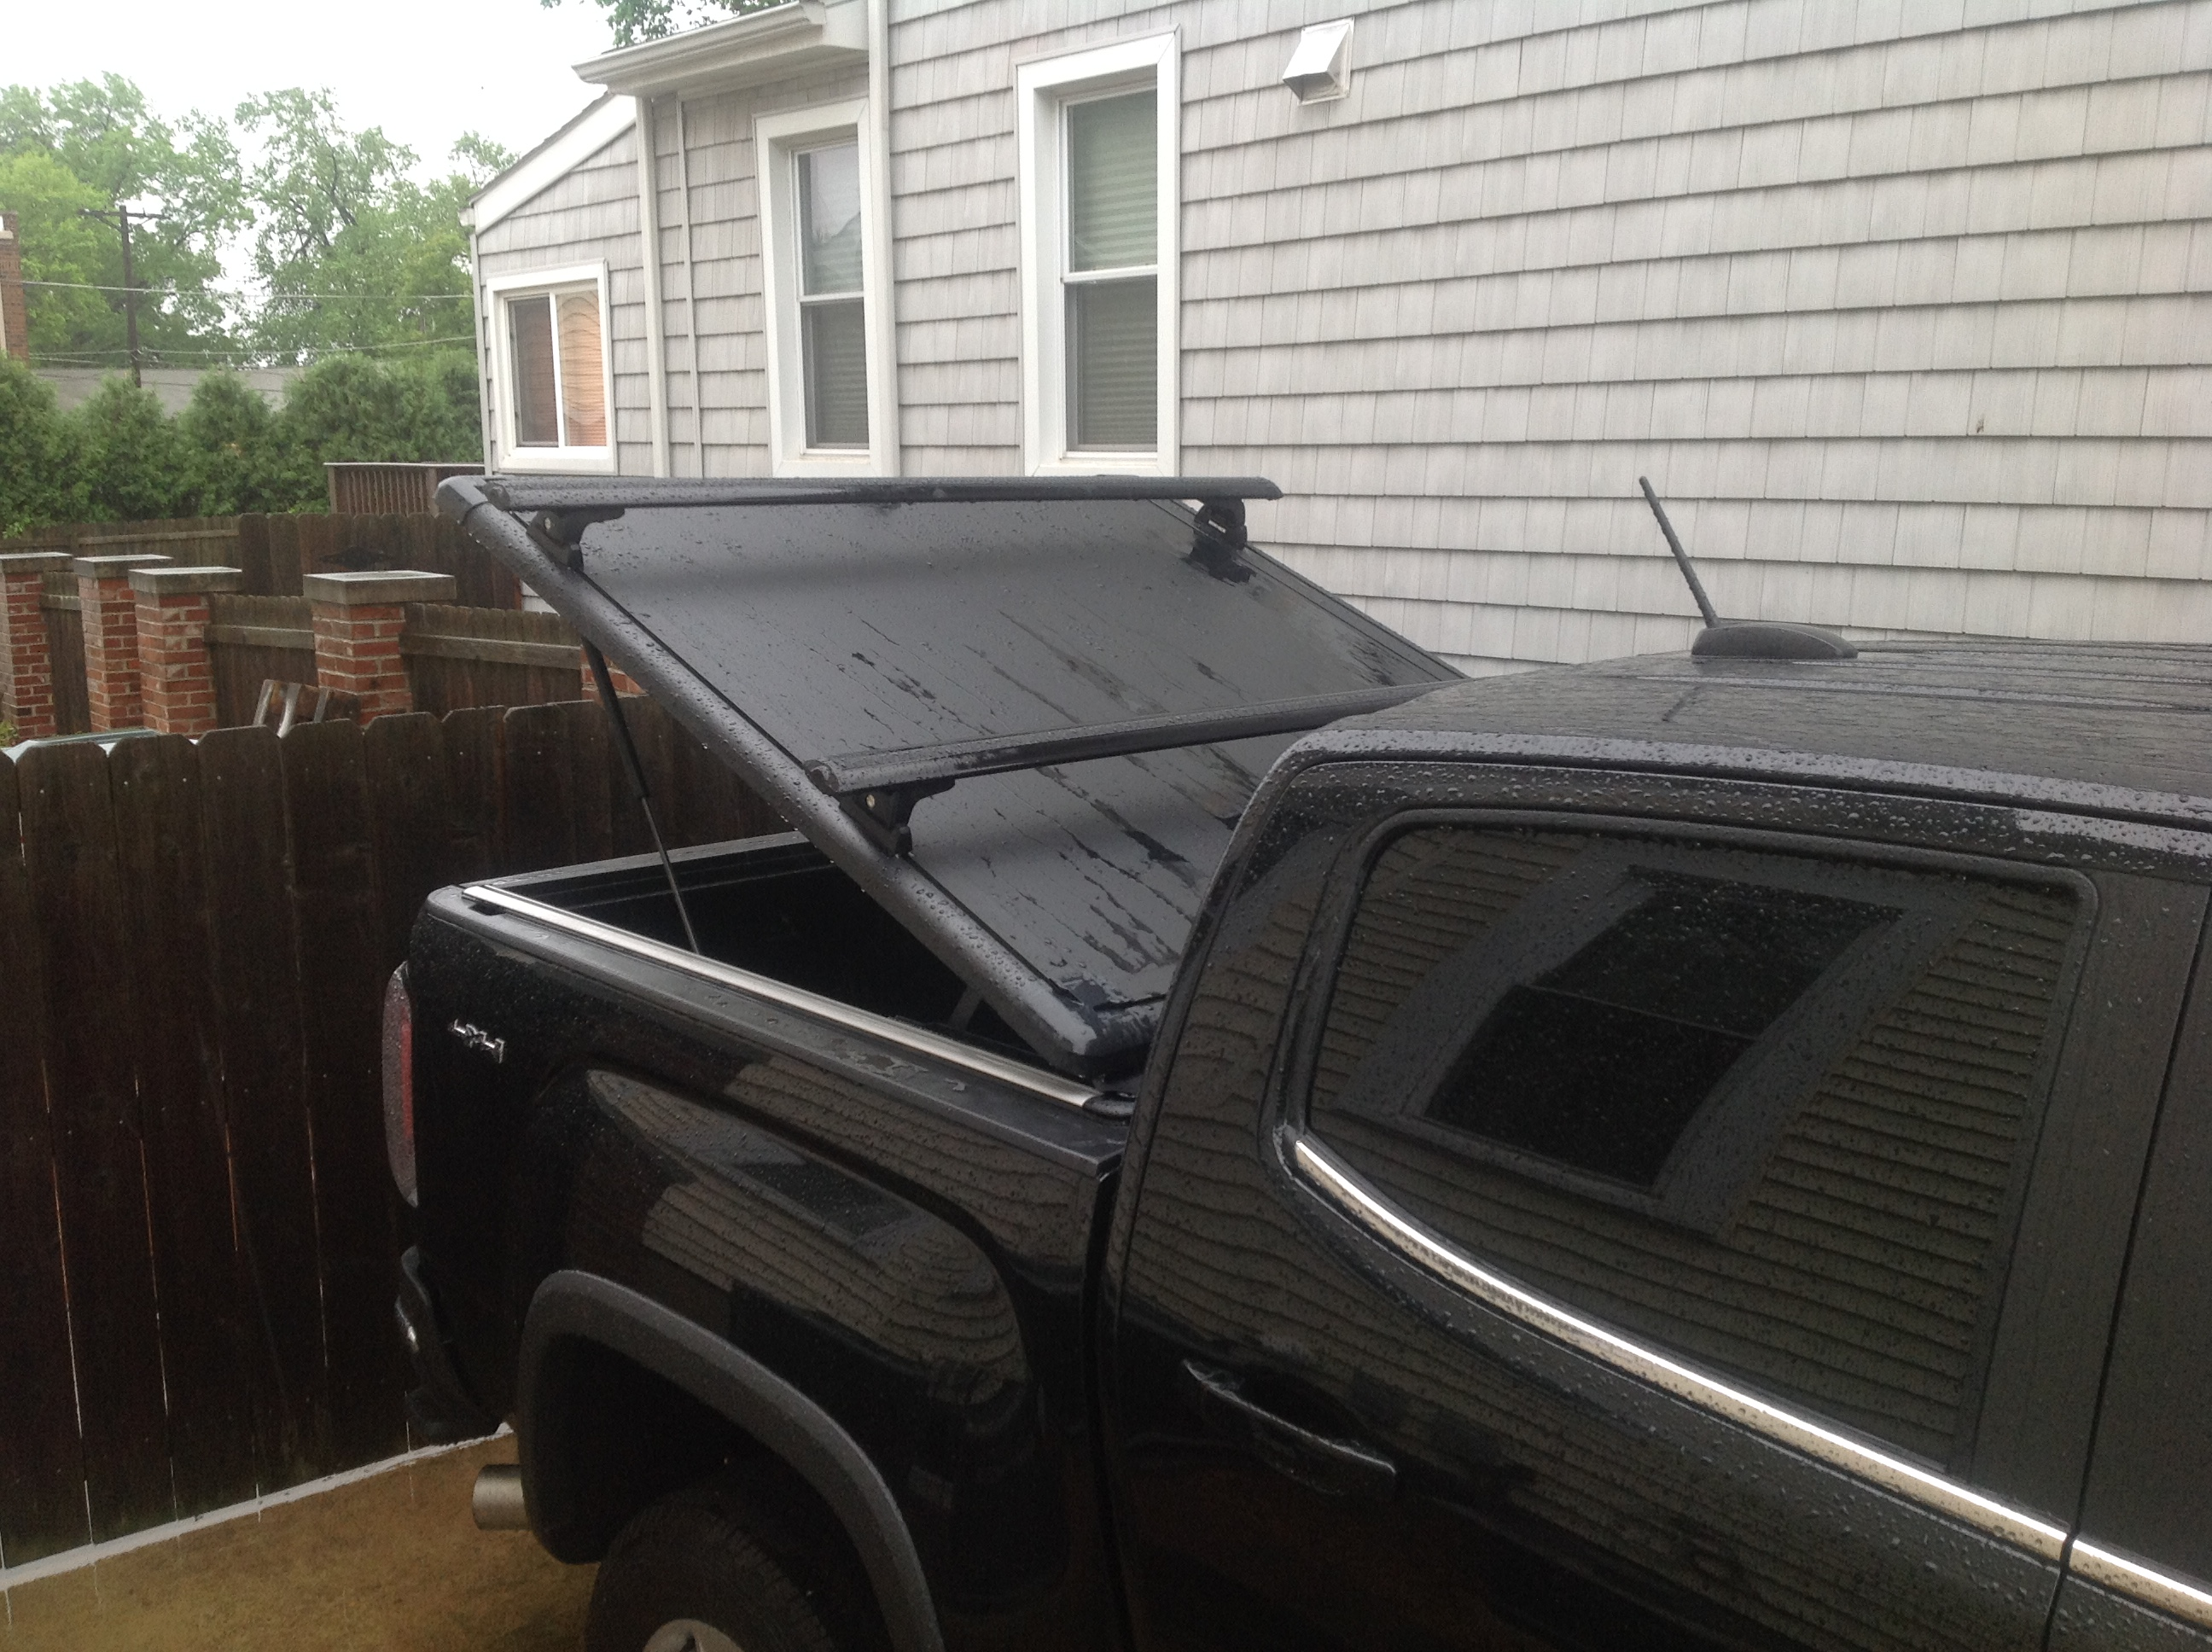 Just Installed An Undercover Ridgelander Tonneau Cover And Oem